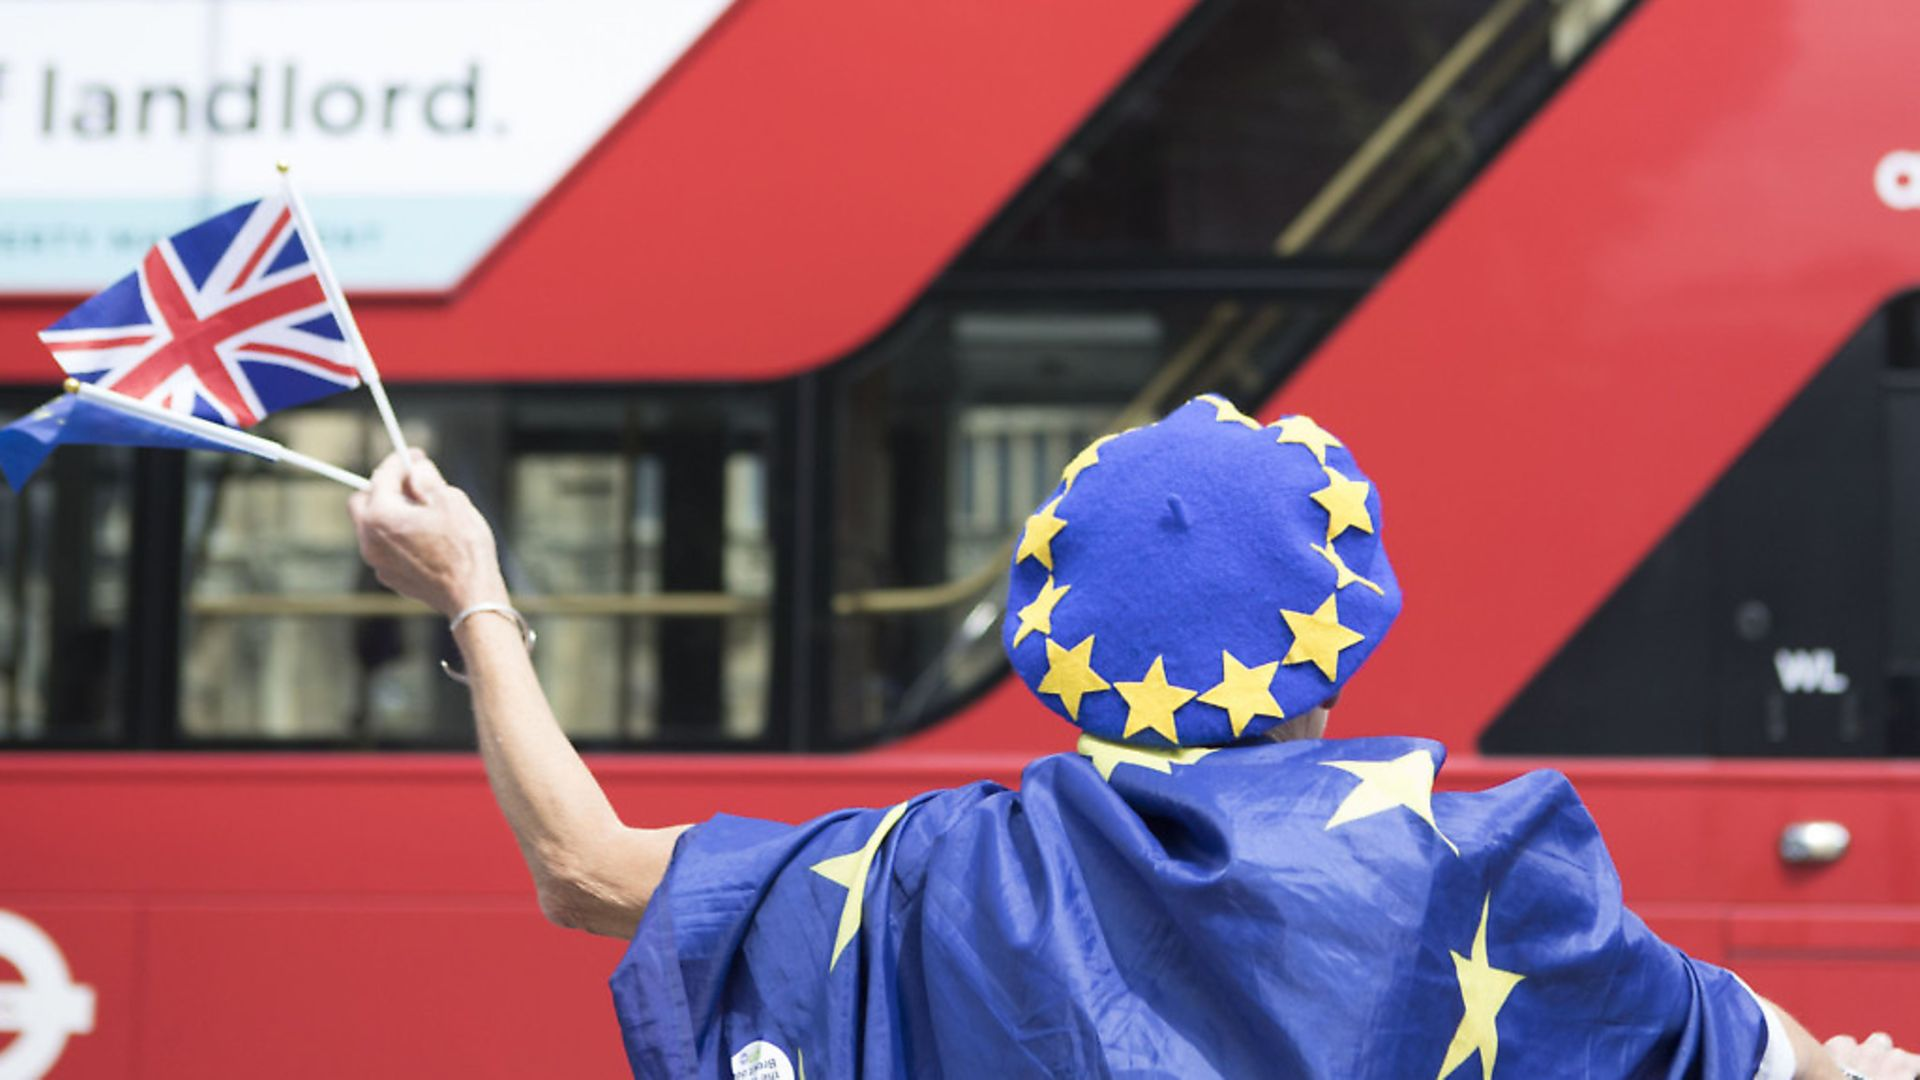 Anti-Brexit demonstrators wave European and Union flags outside the Houses of Parliament in London. Photograph: Rick Findler/PA. - Credit: PA Archive/PA Images